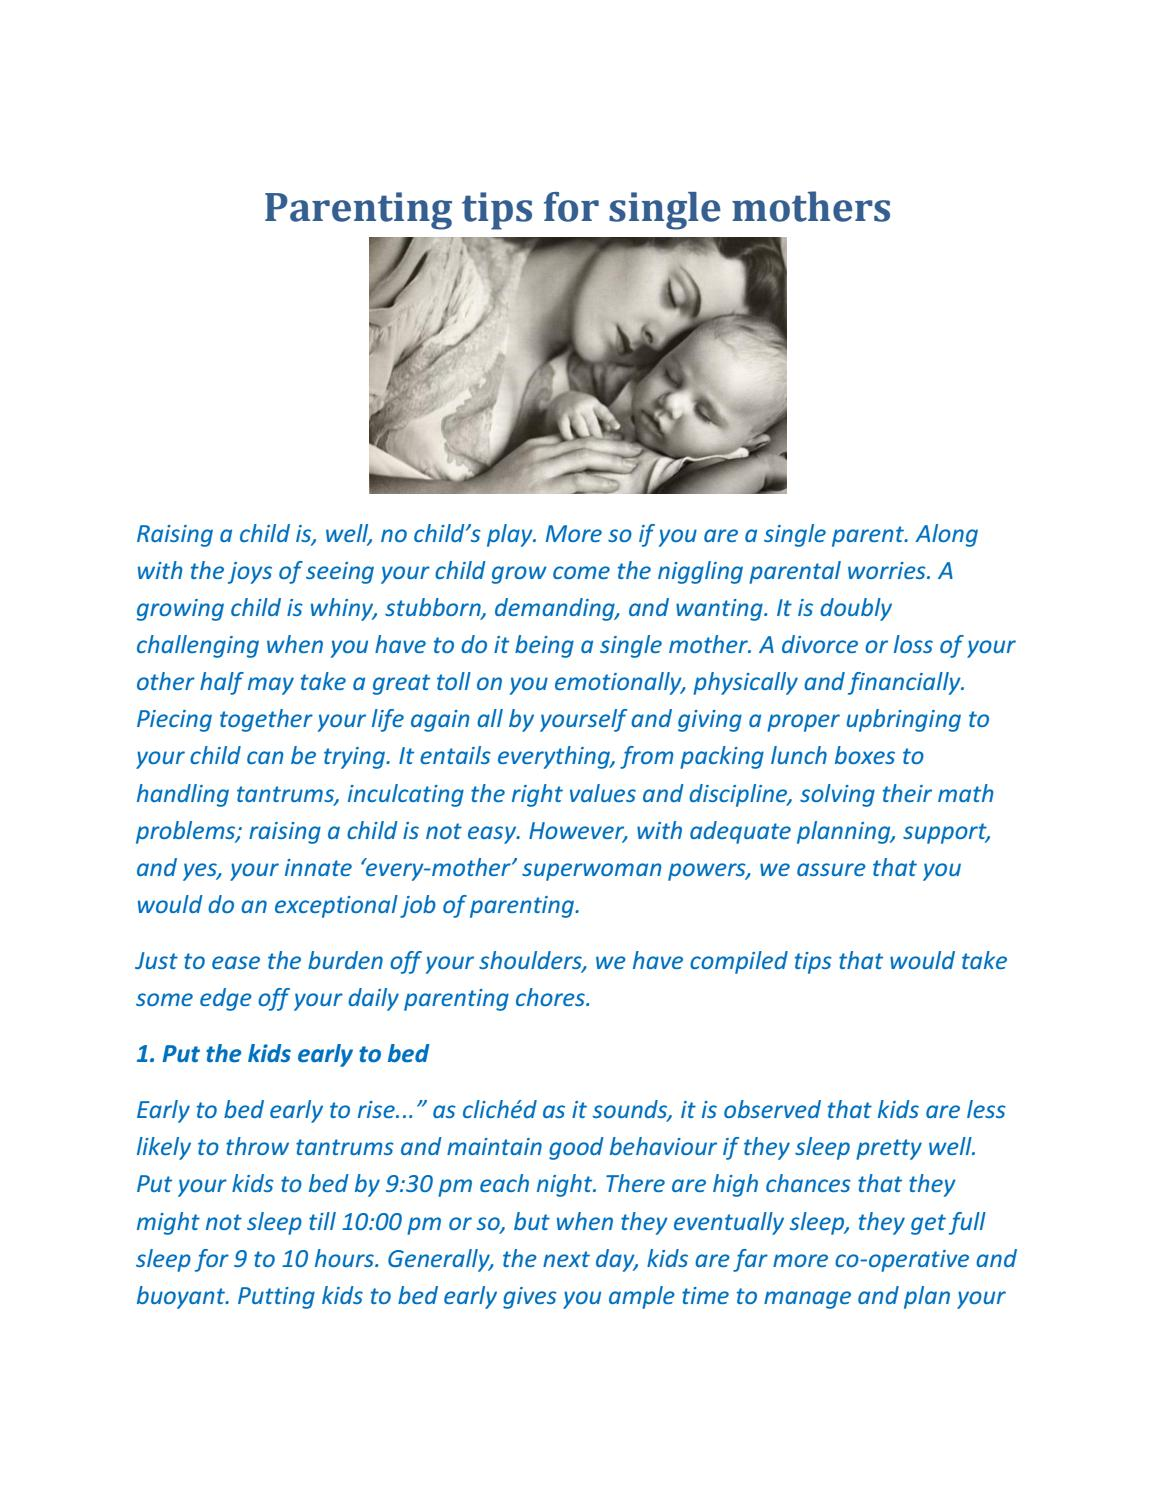 parenting tips for single mothers by ritikashah11998 - issuu